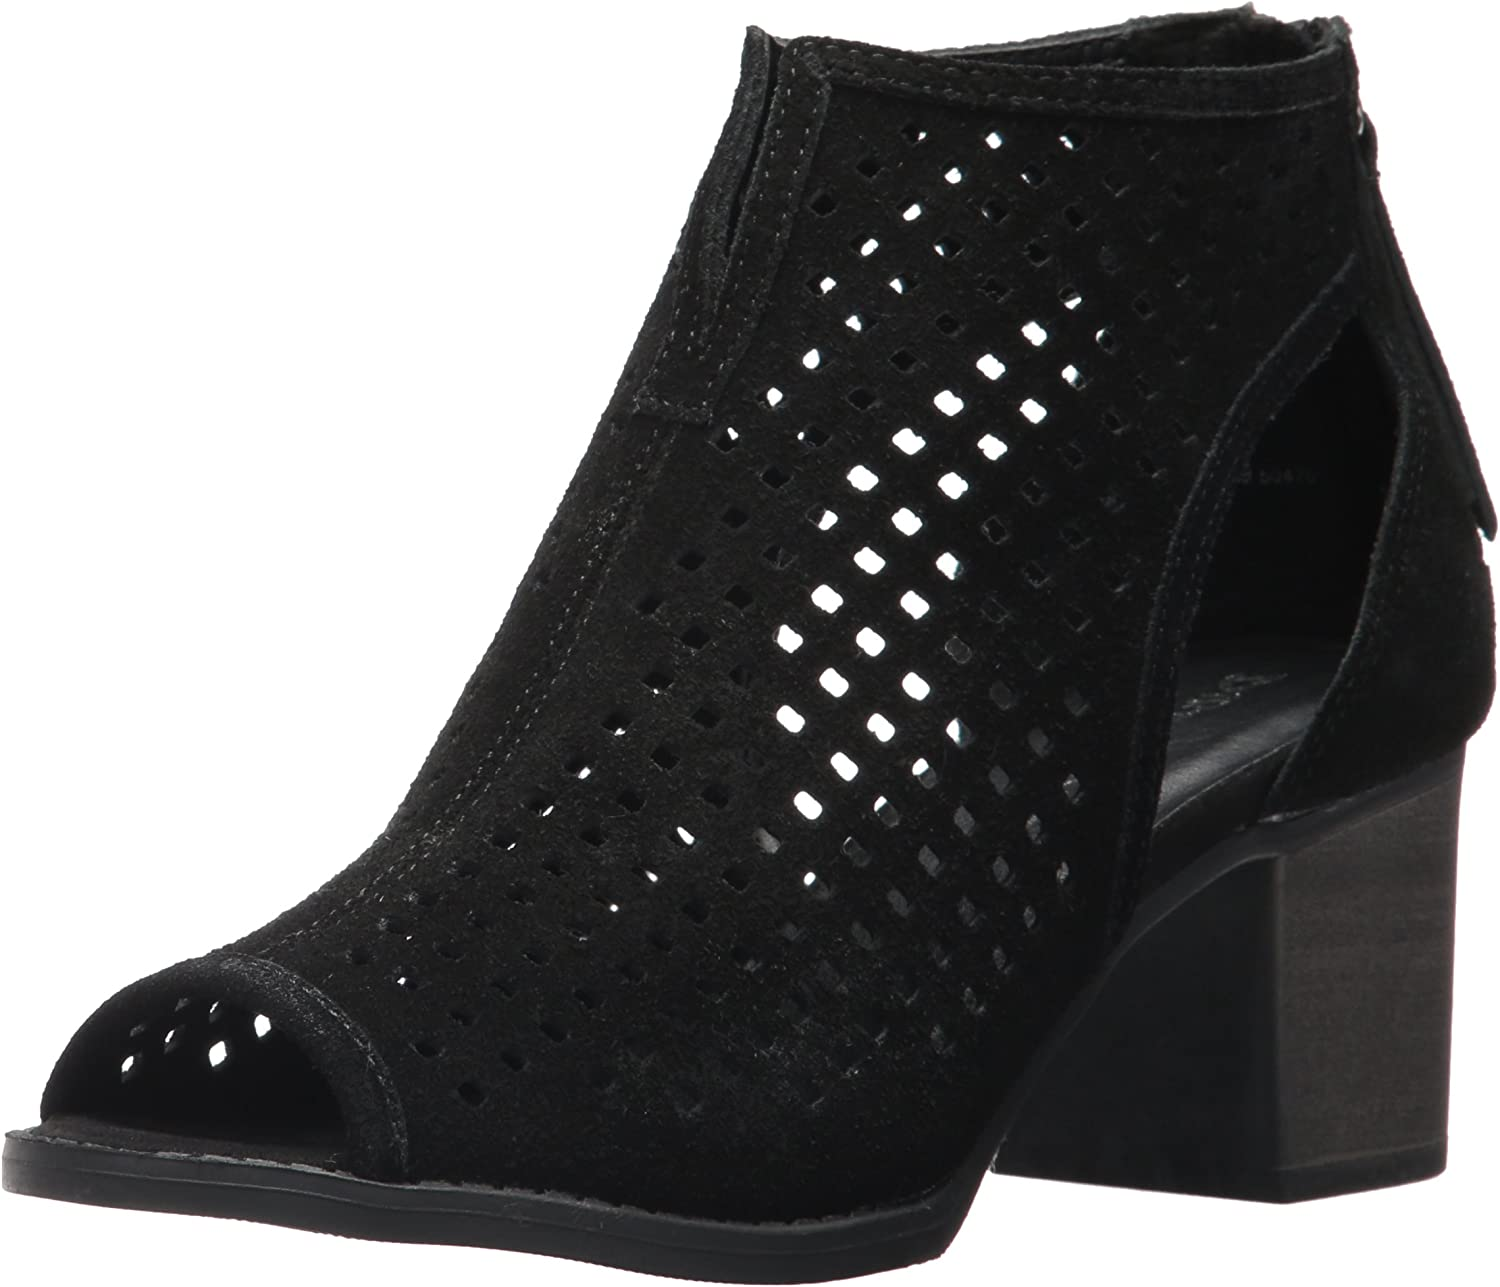 Dirty Laundry by Chinese Laundry Women's Tessa Ankle Boot